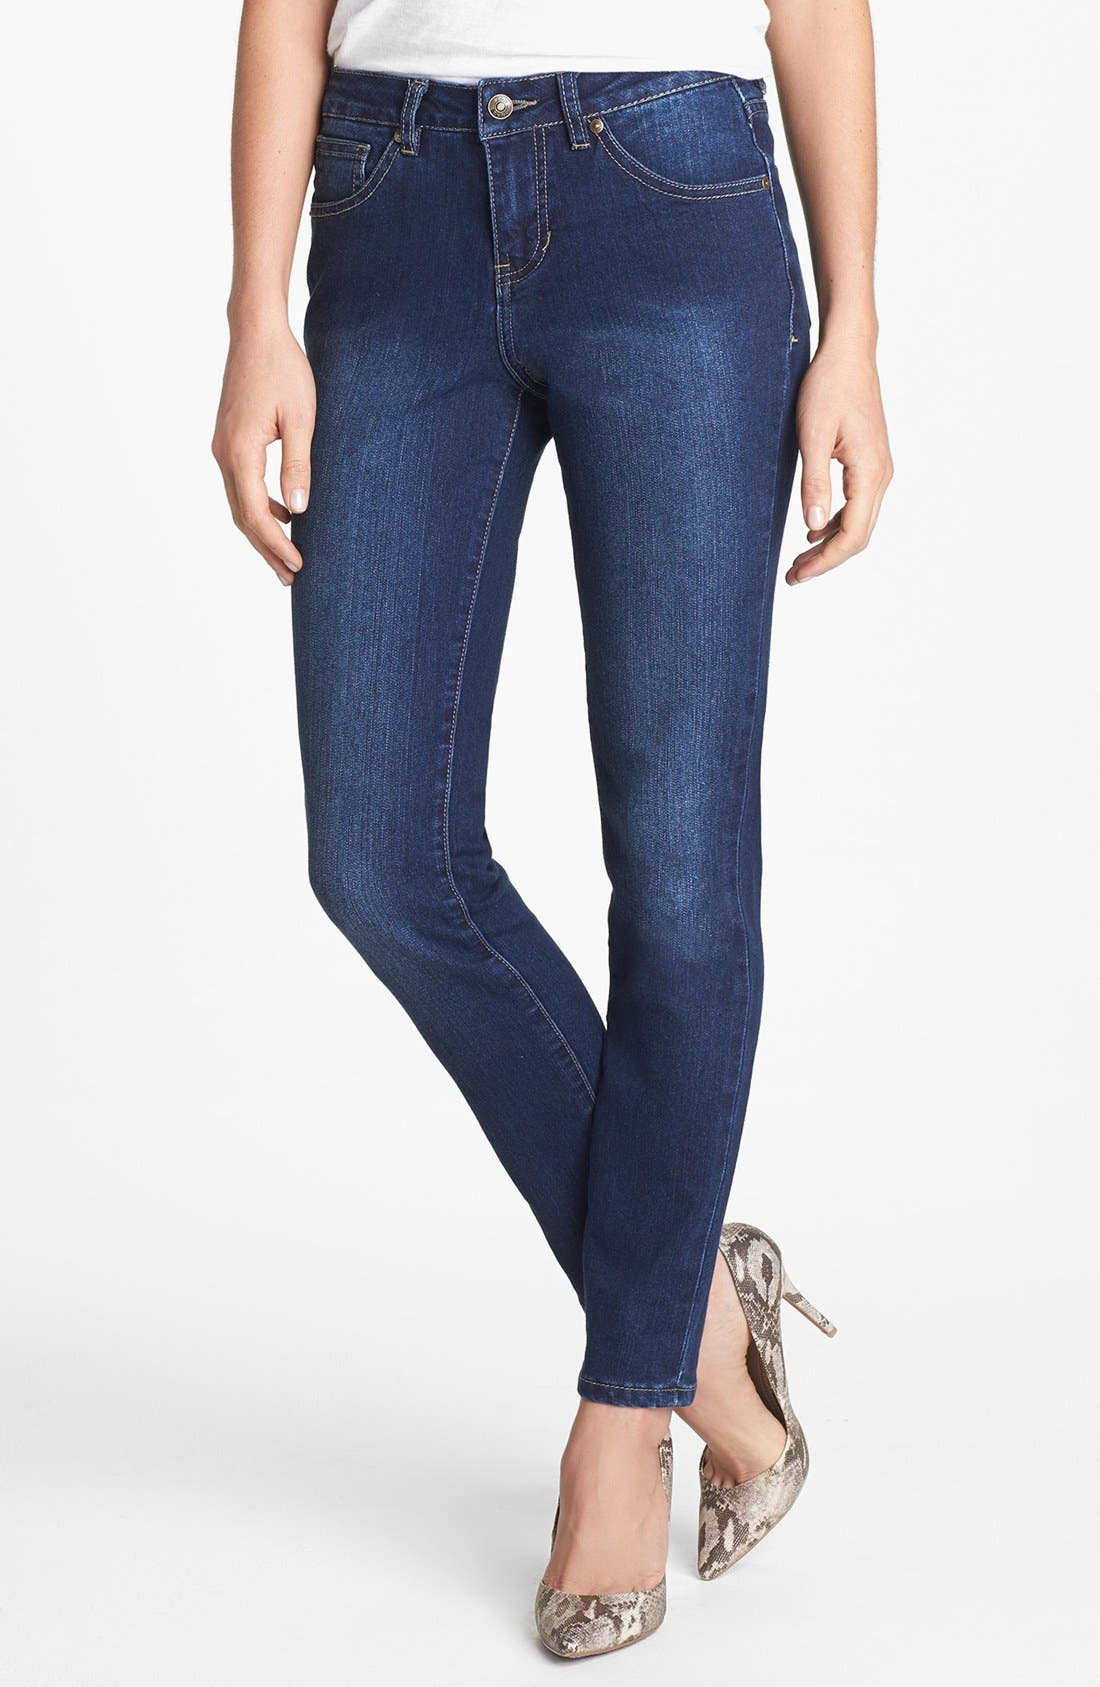 Alternate Image 1 Selected - Jag Jeans 'Miranda' Skinny Jeans (Dark Rainwash)